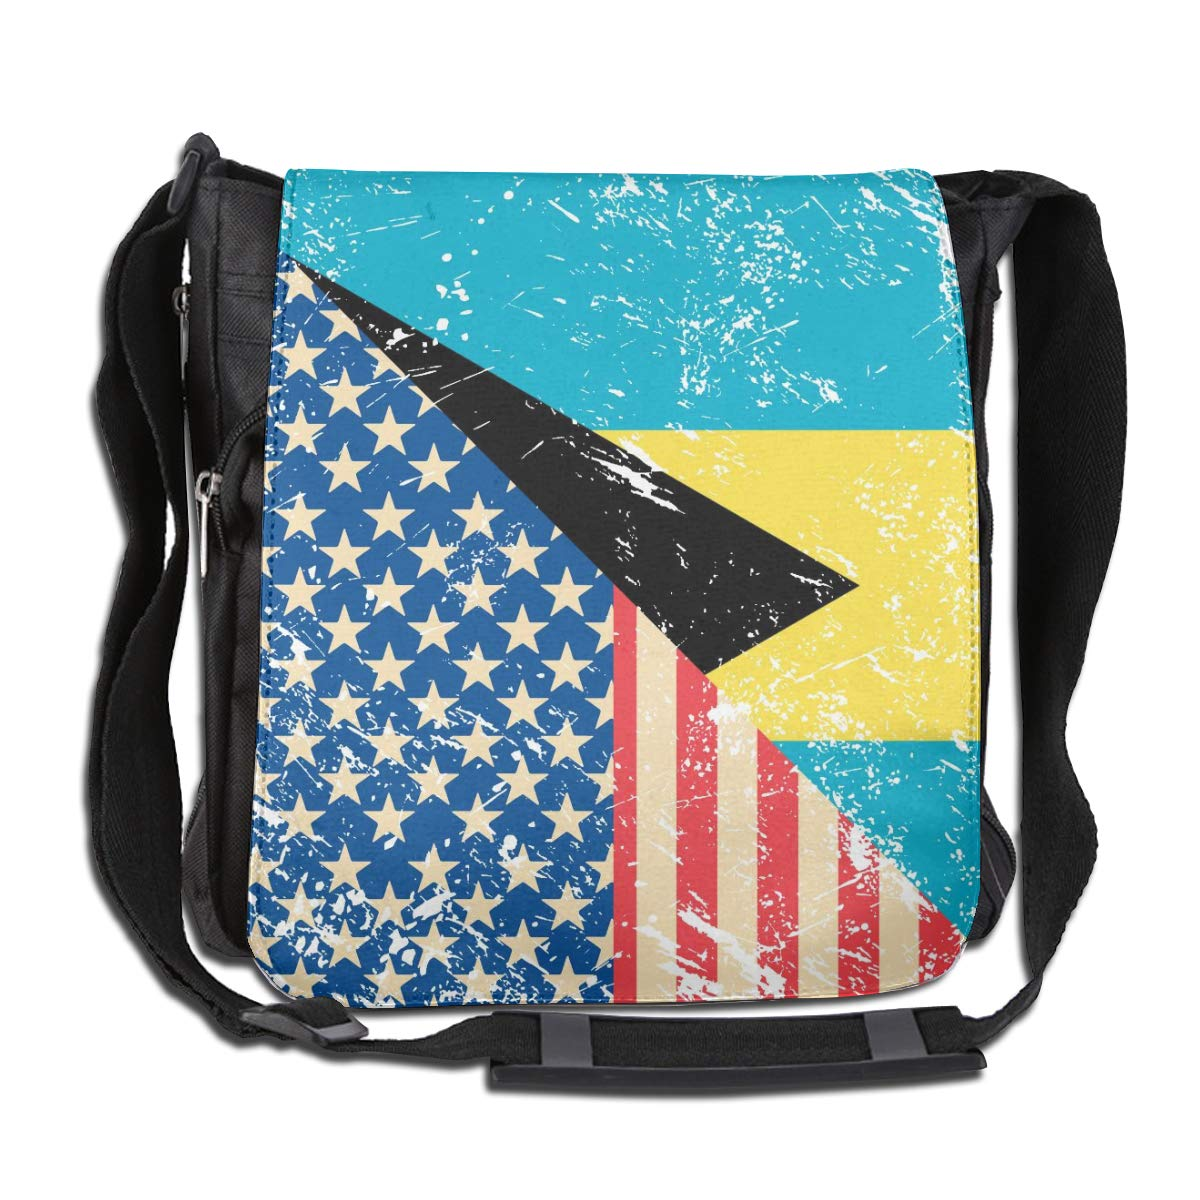 Unisex Classic Satchel Messenger Bags American And Bahamas Retro Flag Crossbody Shoulder Bag Side Bags For School//Work//Trips